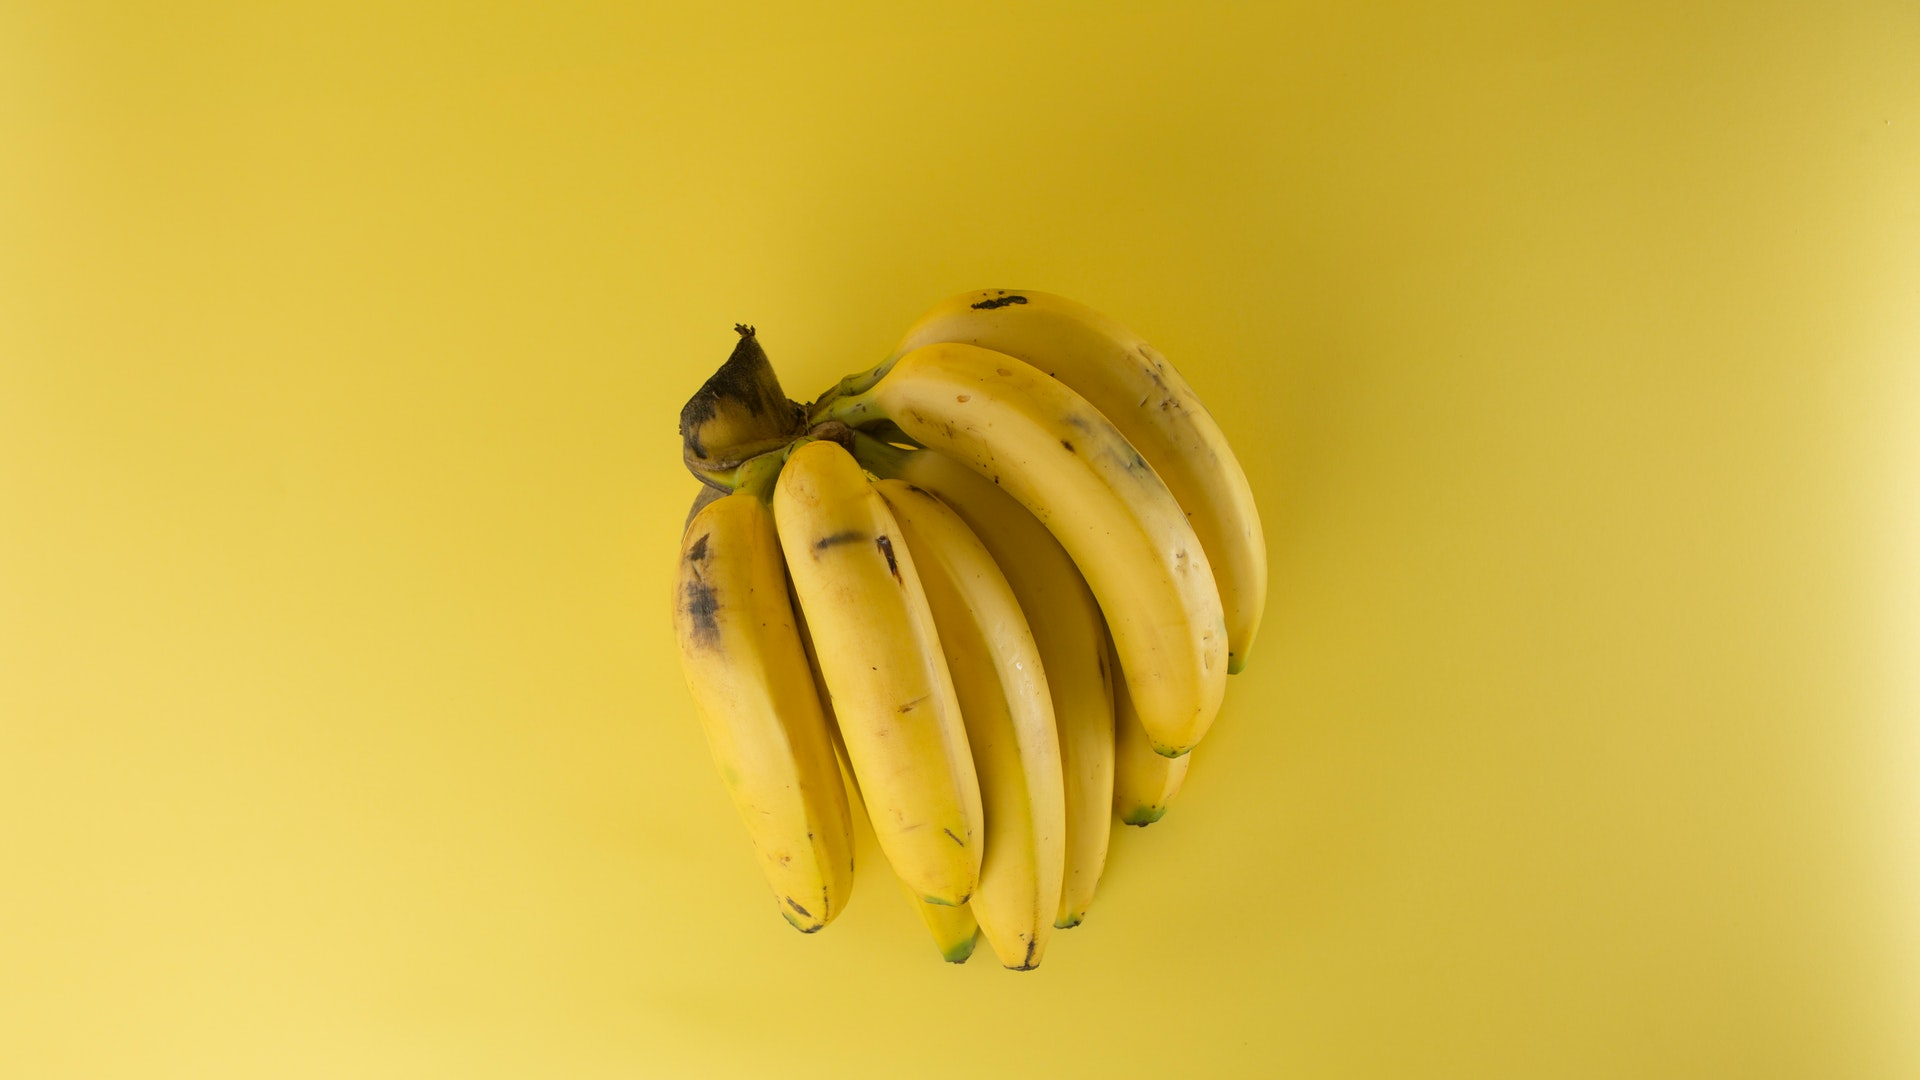 A Banana-Killing Fungus Has Reached Latin America. Does This Spell the End for Bananas?